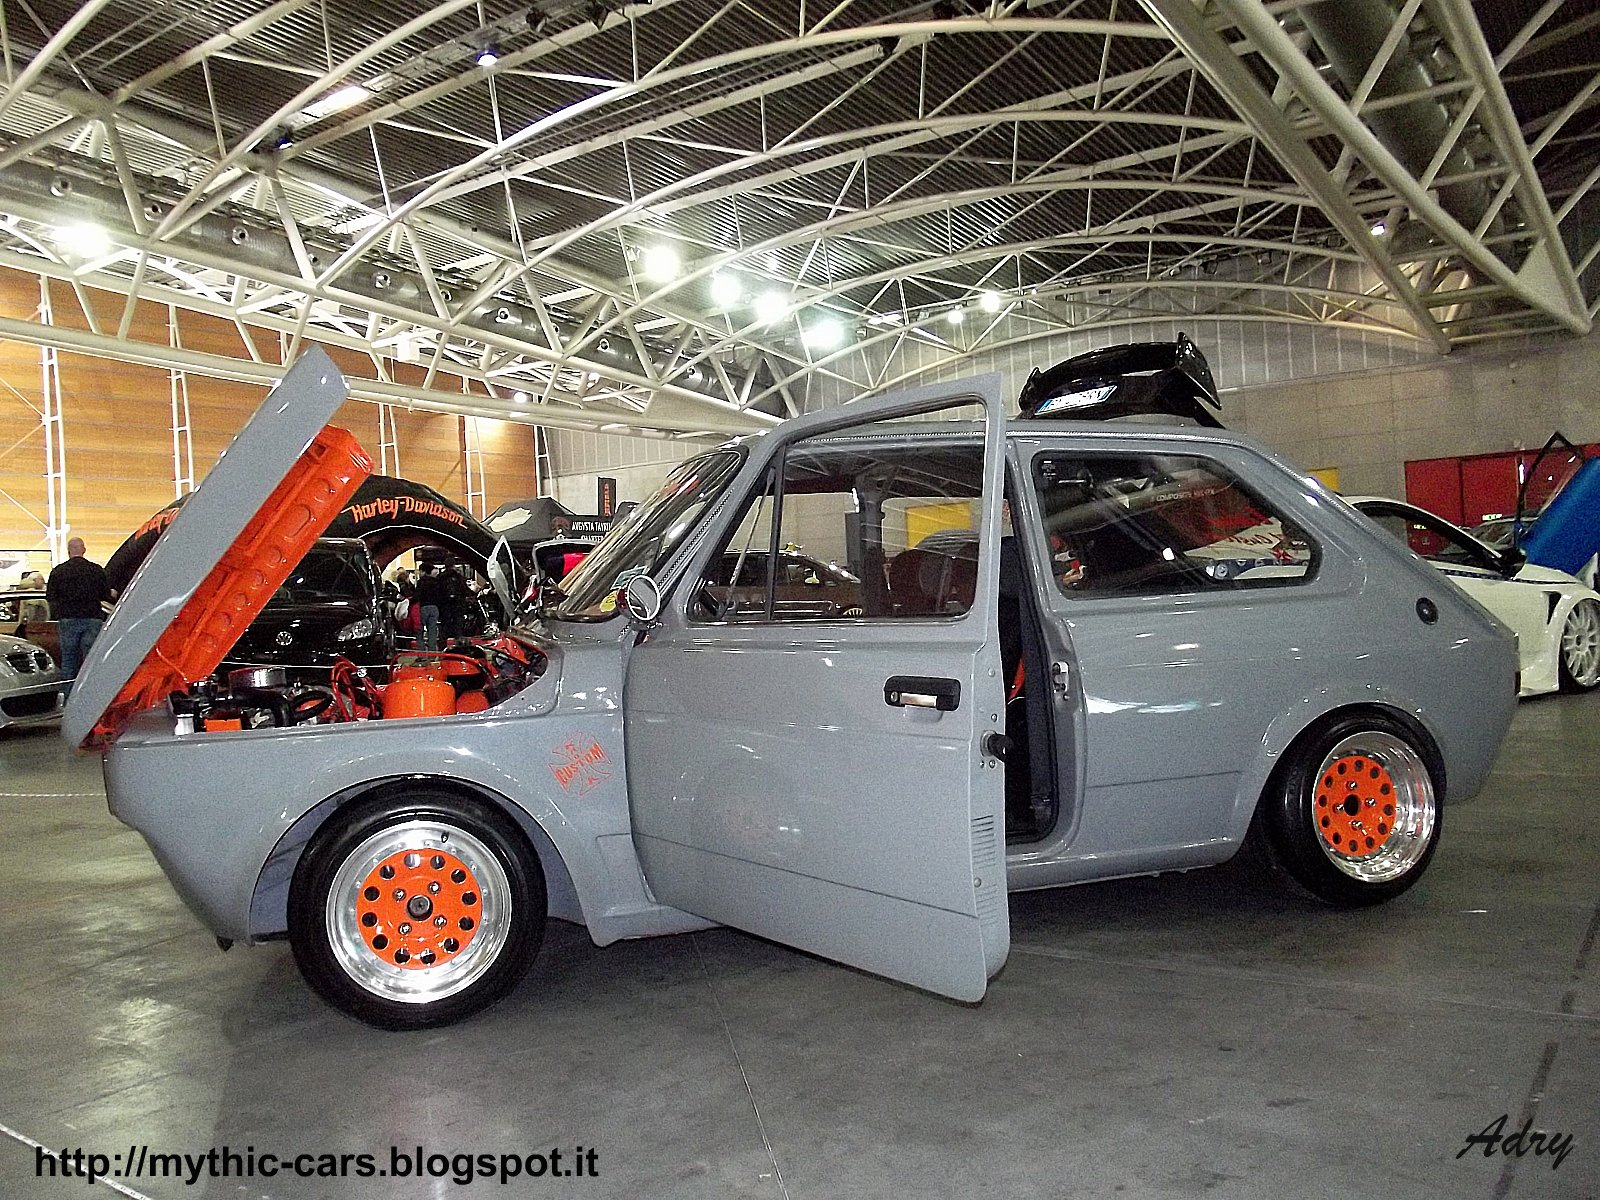 slammed fiat 500 abarth with Fiat 127 Tuning on 265 Fiat 126p Tuning Wallpaper 2 besides CmV0cm8gd2hlZWxzIGZpYXQgNTAwIGl0YWxpYW4 together with 500 500c Abarth likewise Peugeot 306 Dturbo further 108466 Pontiac Aztek Gains Traction Millennials Breaking Bad Role.